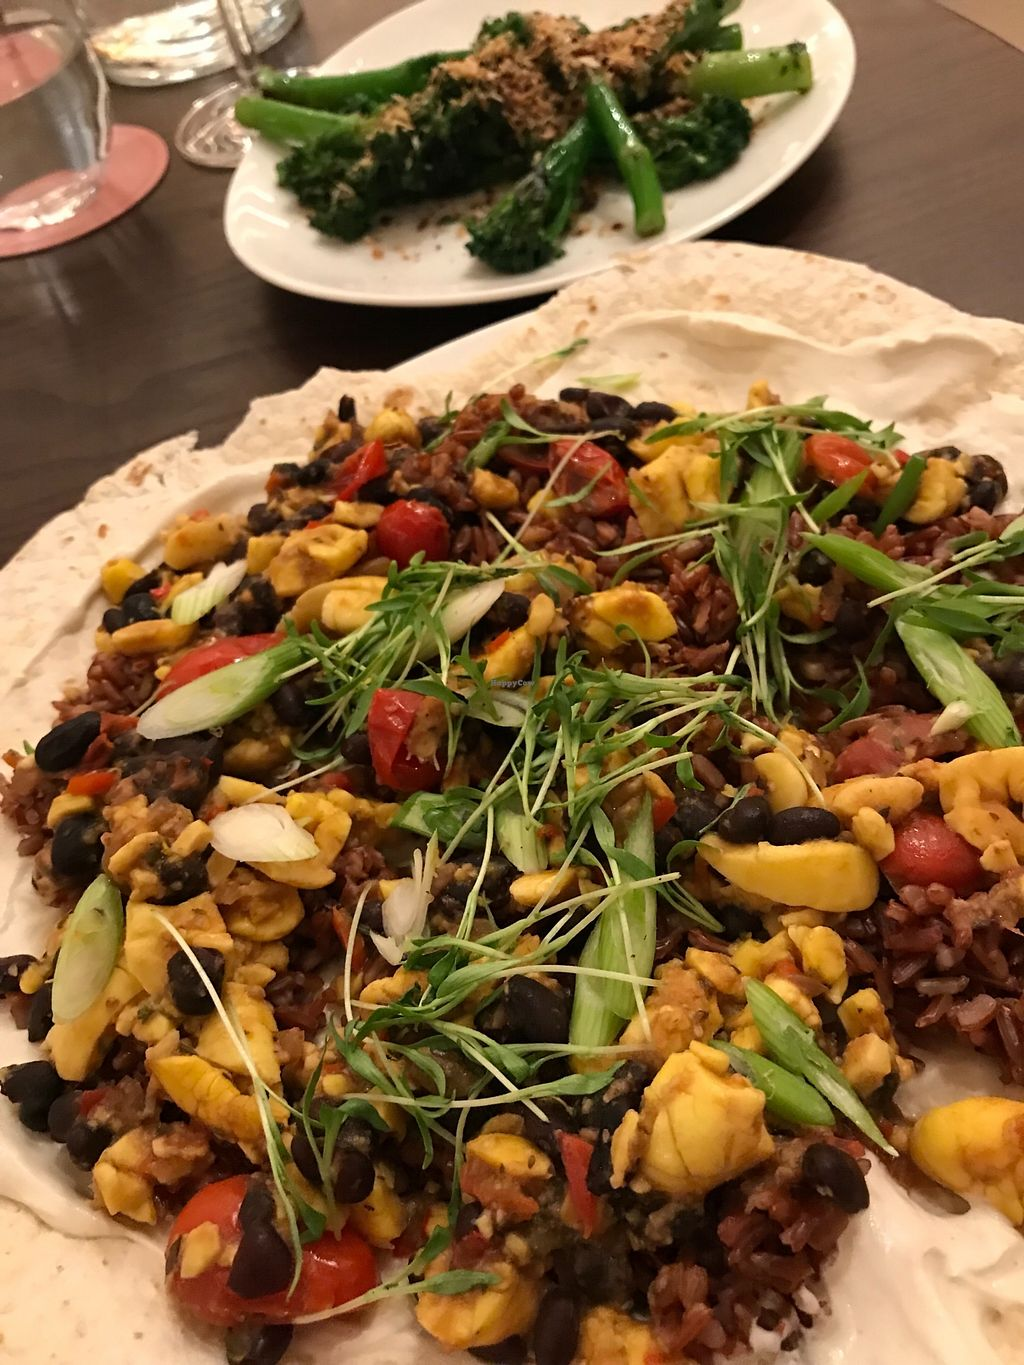 """Photo of Wulf & Lamb  by <a href=""""/members/profile/macganol"""">macganol</a> <br/>Open burrito. Really loved it <br/> December 20, 2017  - <a href='/contact/abuse/image/102949/337584'>Report</a>"""